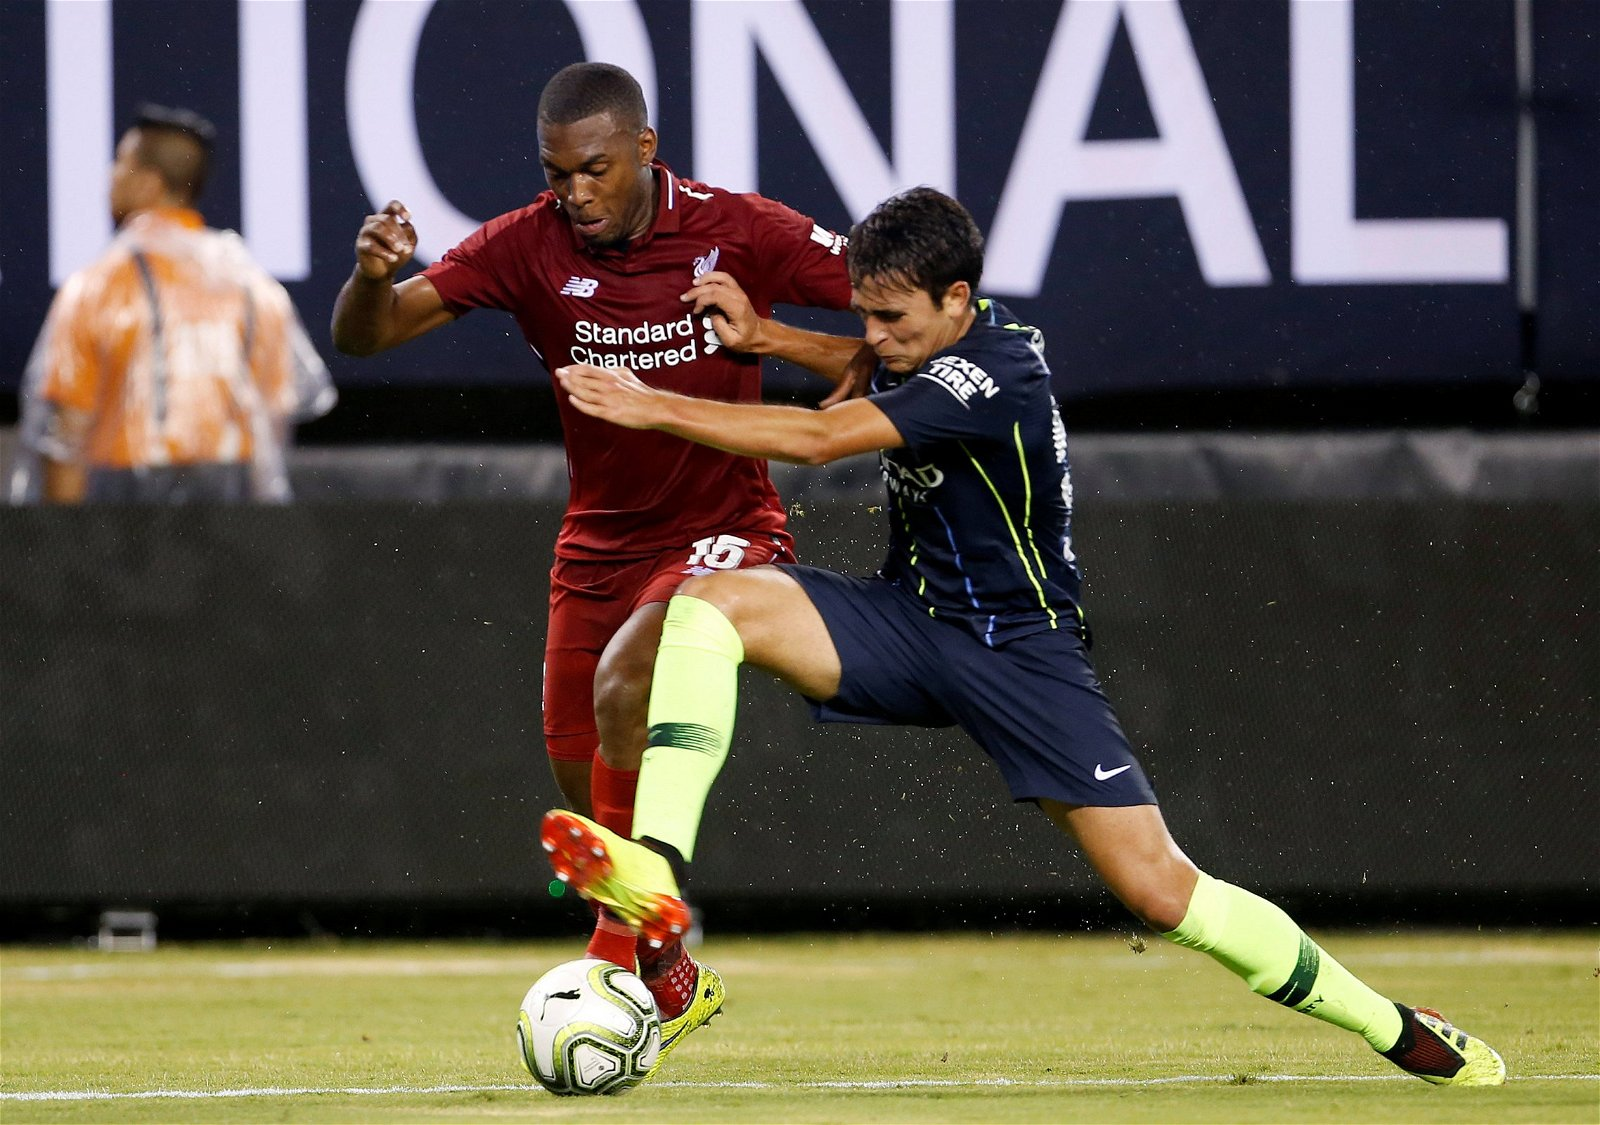 Eric Garcia in pre-season action against Liverpool's Sturridge